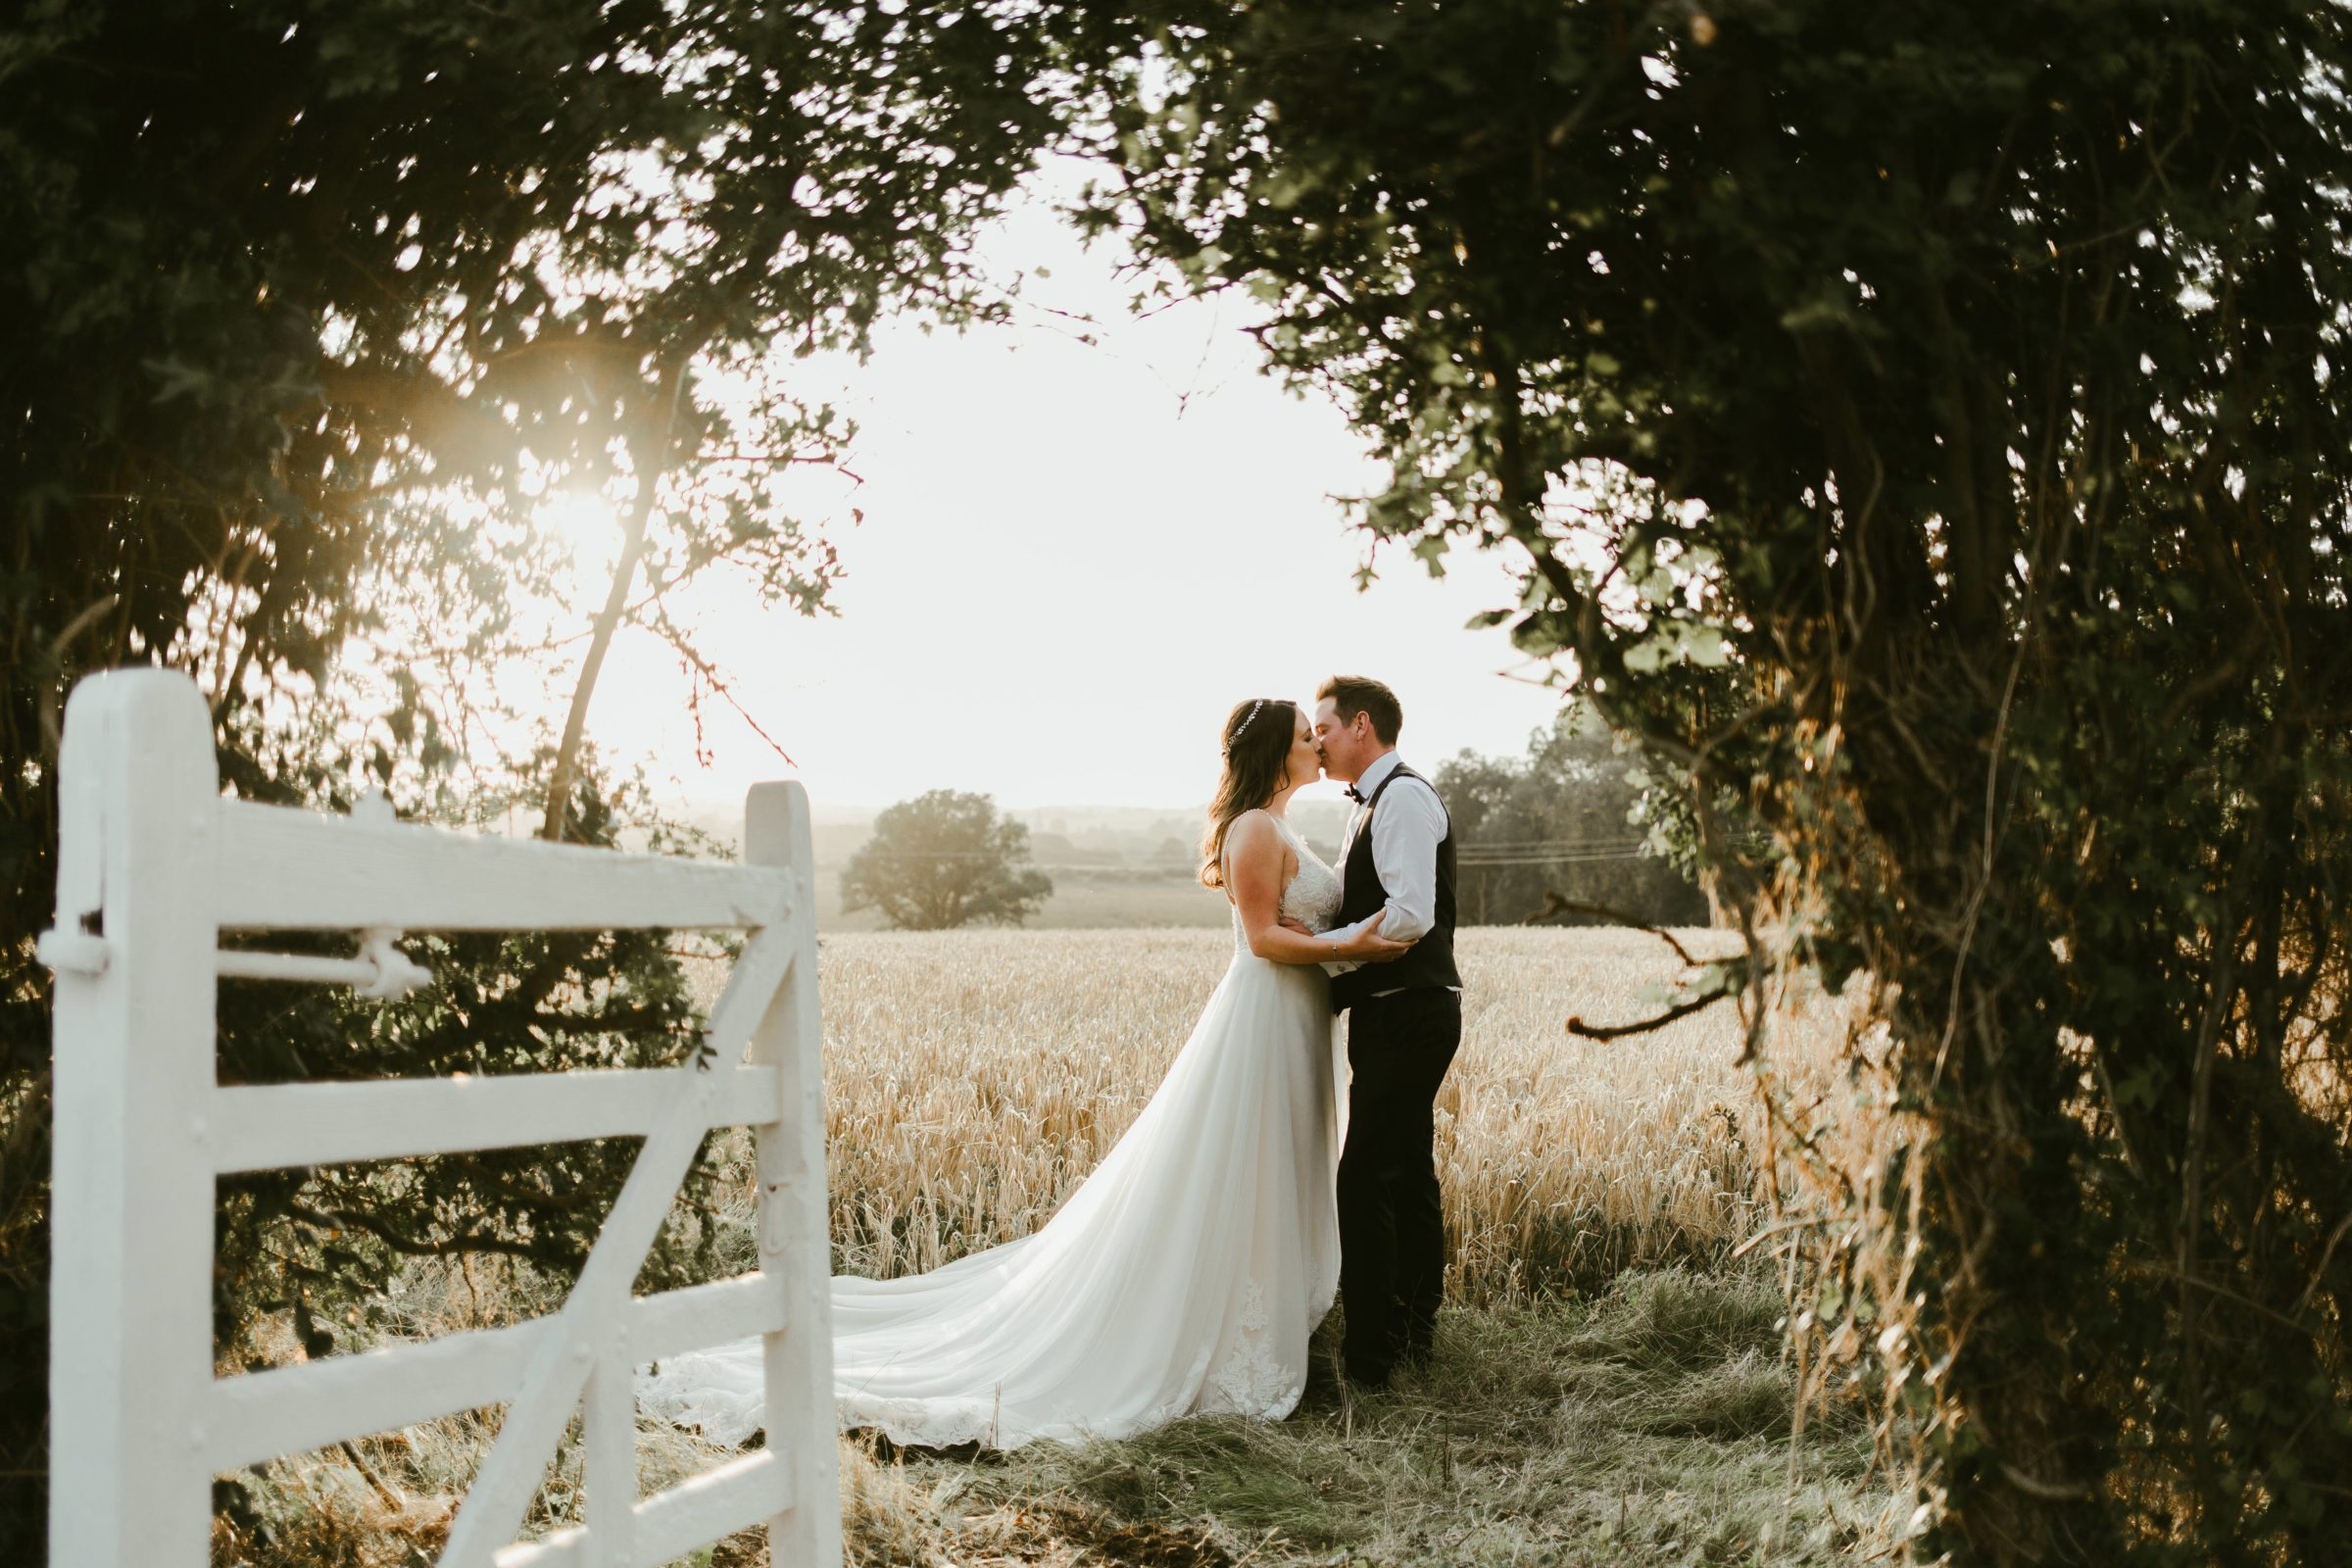 romantic-wedding-photography-photographer-uk-golden-hour-couple